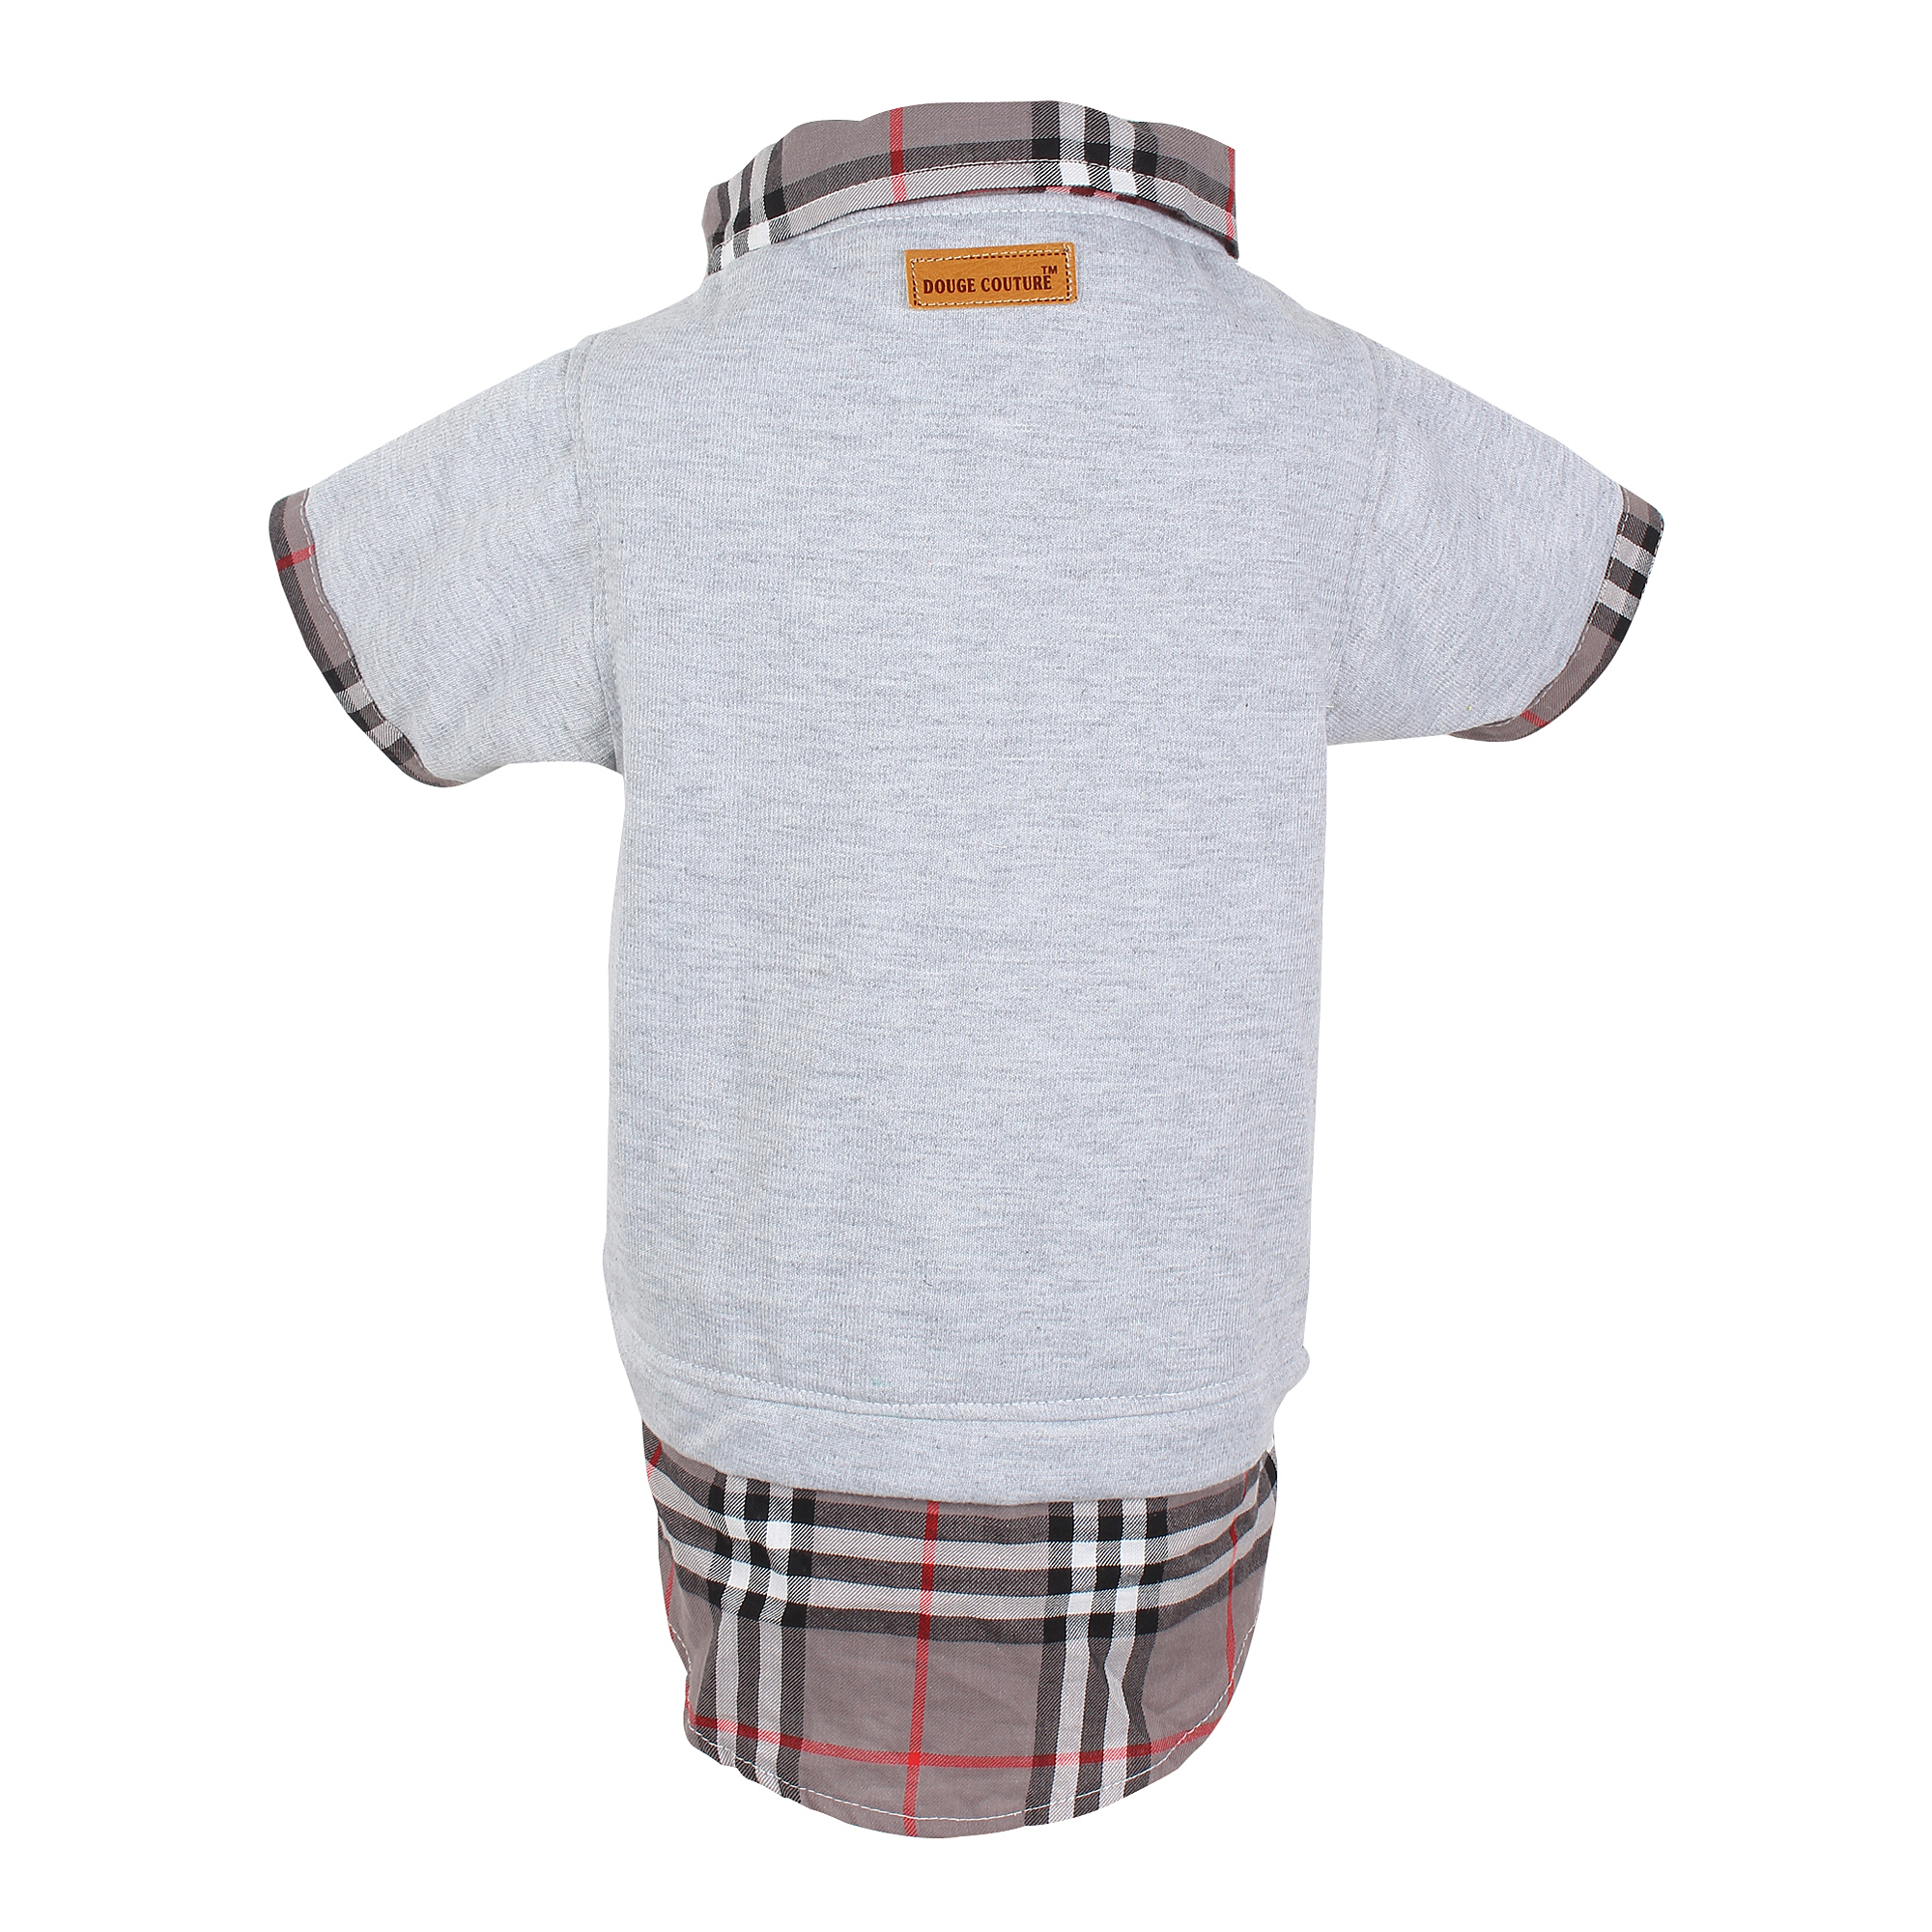 DOUGE COUTURE CHECK WINTEER GREY SHIRT